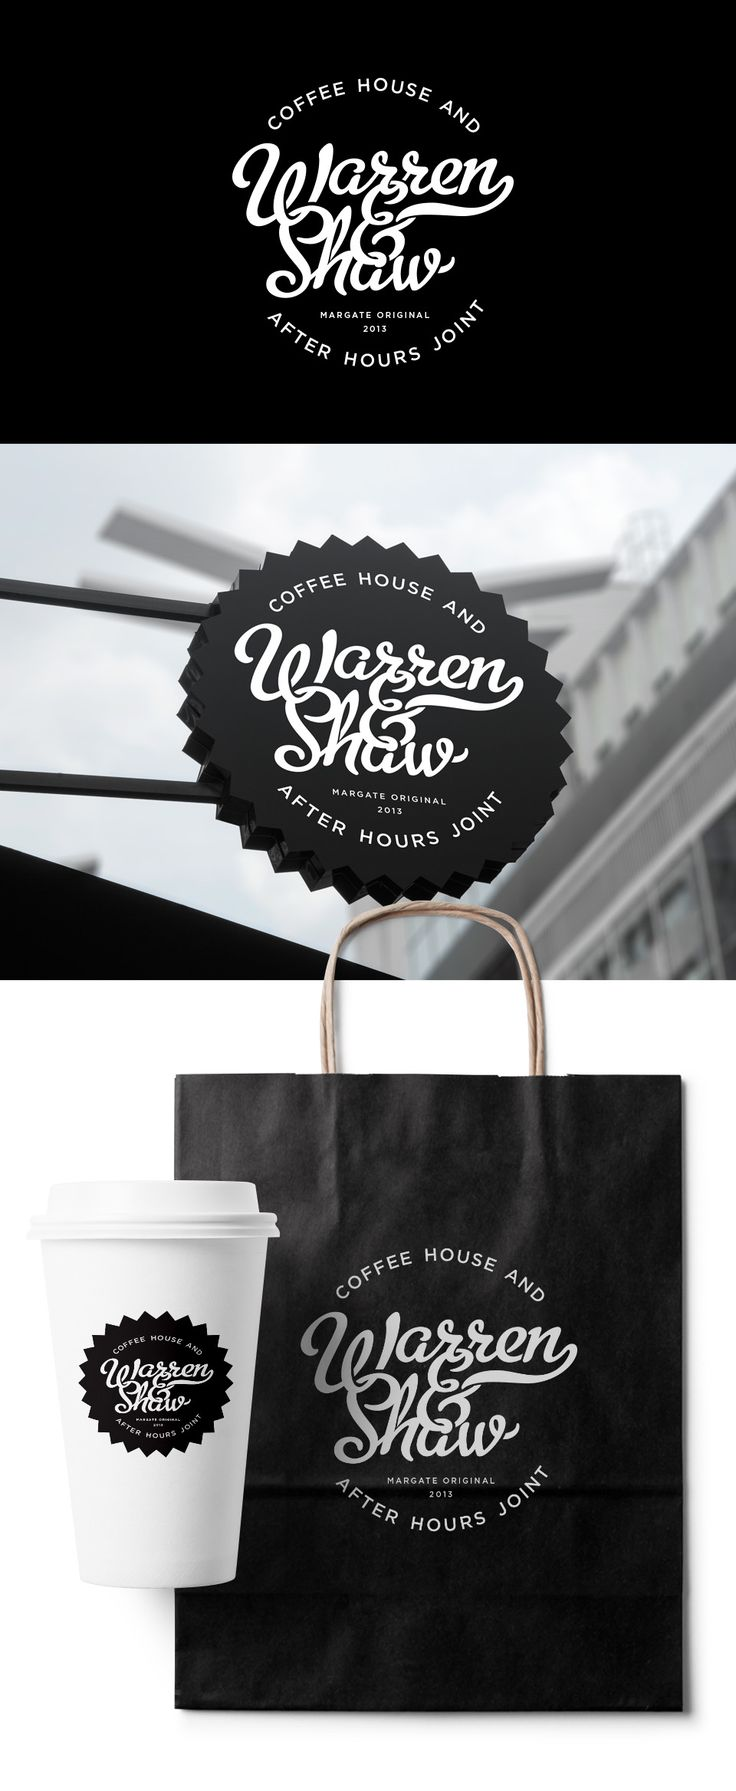 Design #6 by nenadd | Create a sophisticated logo for a coffee house and bar